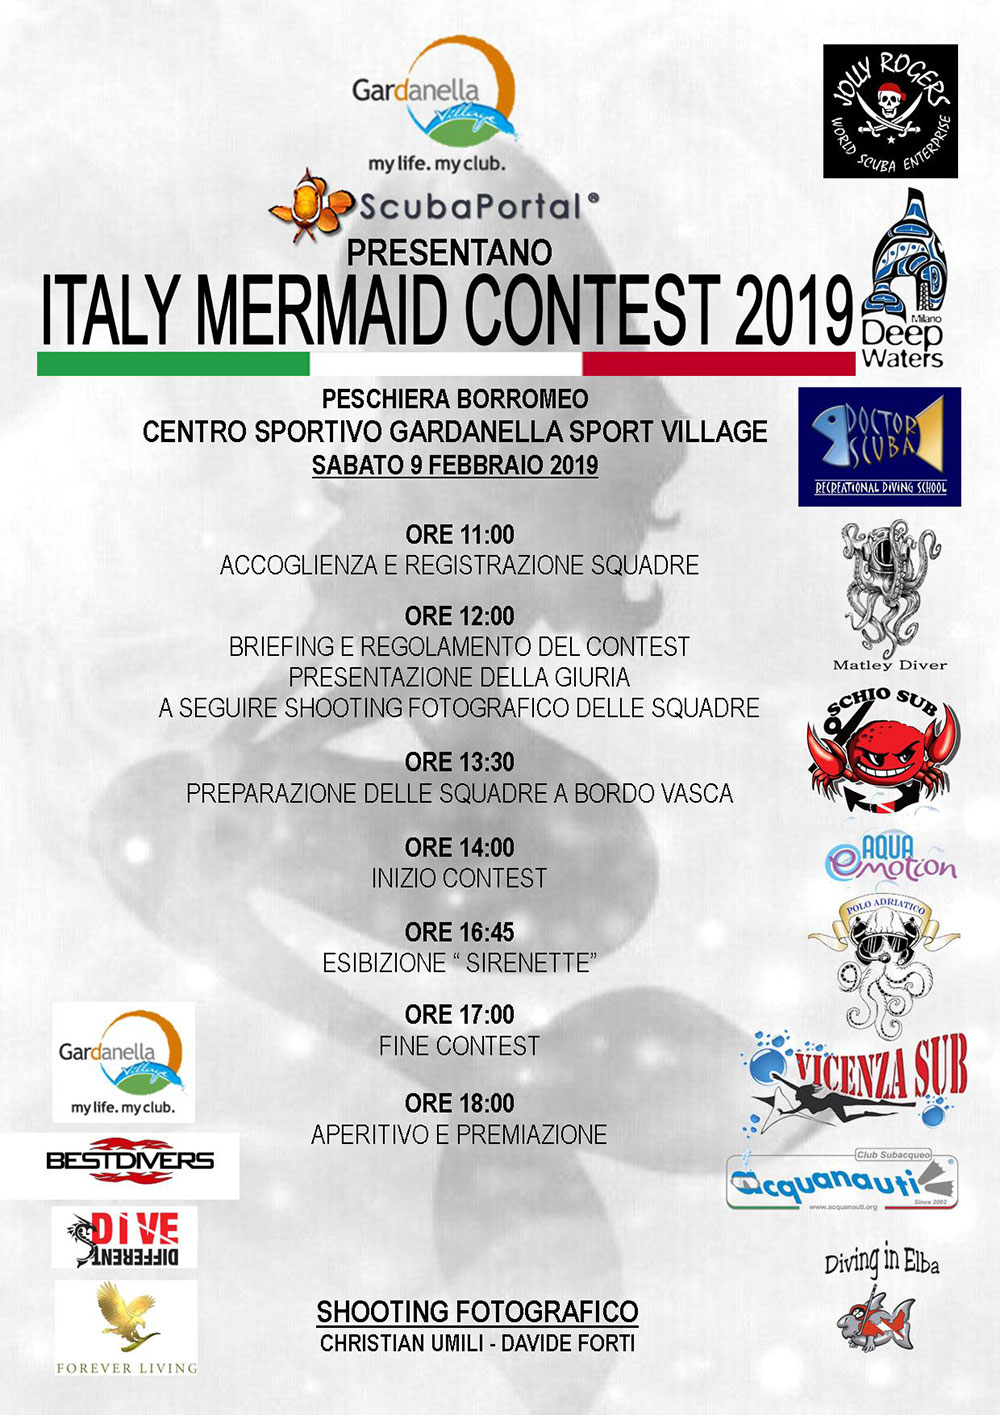 locandina-mermaid-contest